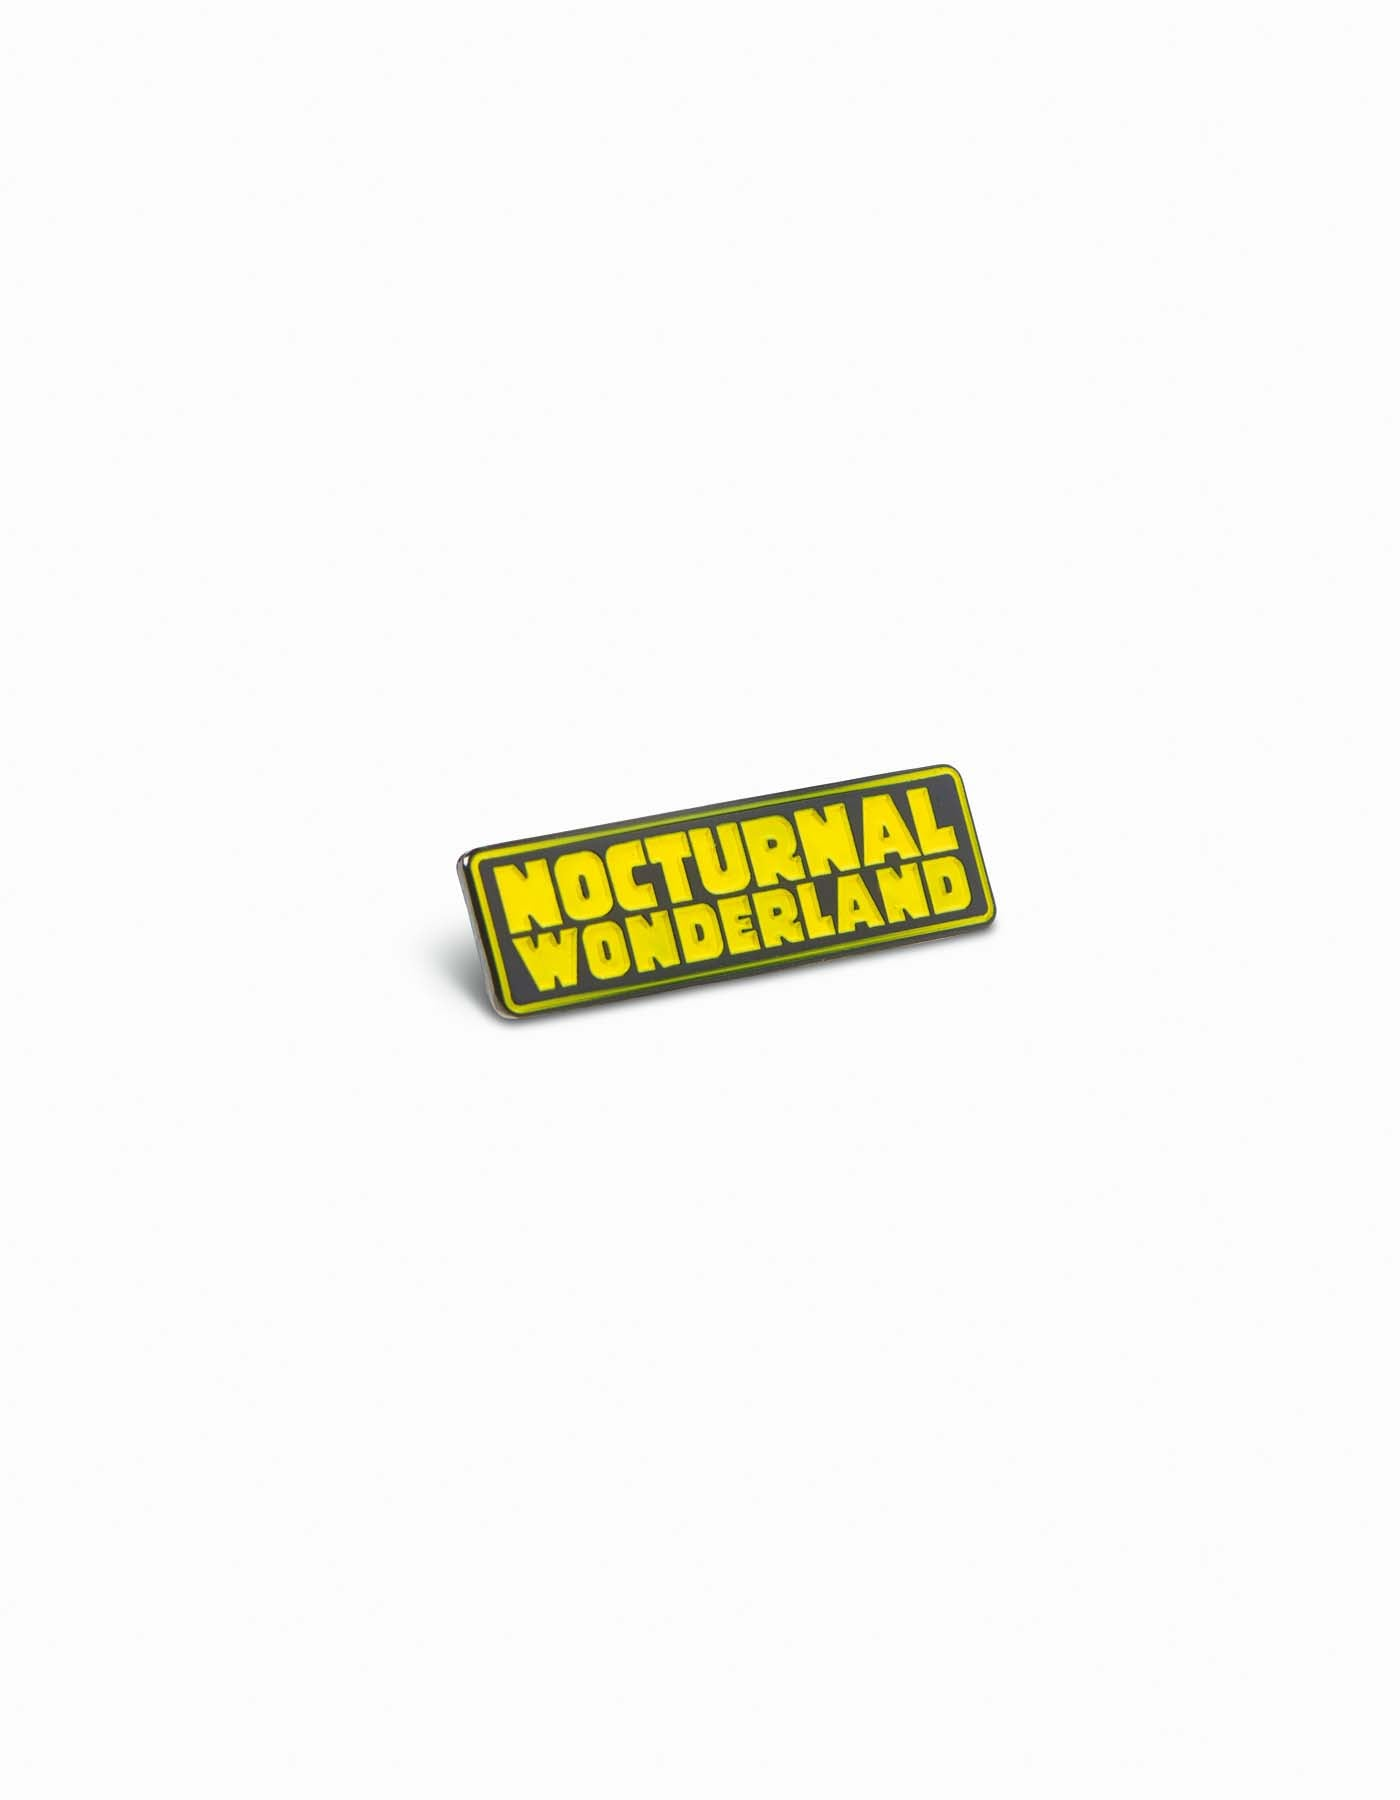 Image of: Design Nocturnal2017 Nocturnal Logo Pin Brandcrowd Nocturnal2017 Nocturnal Logo Pin Insomniac Shop